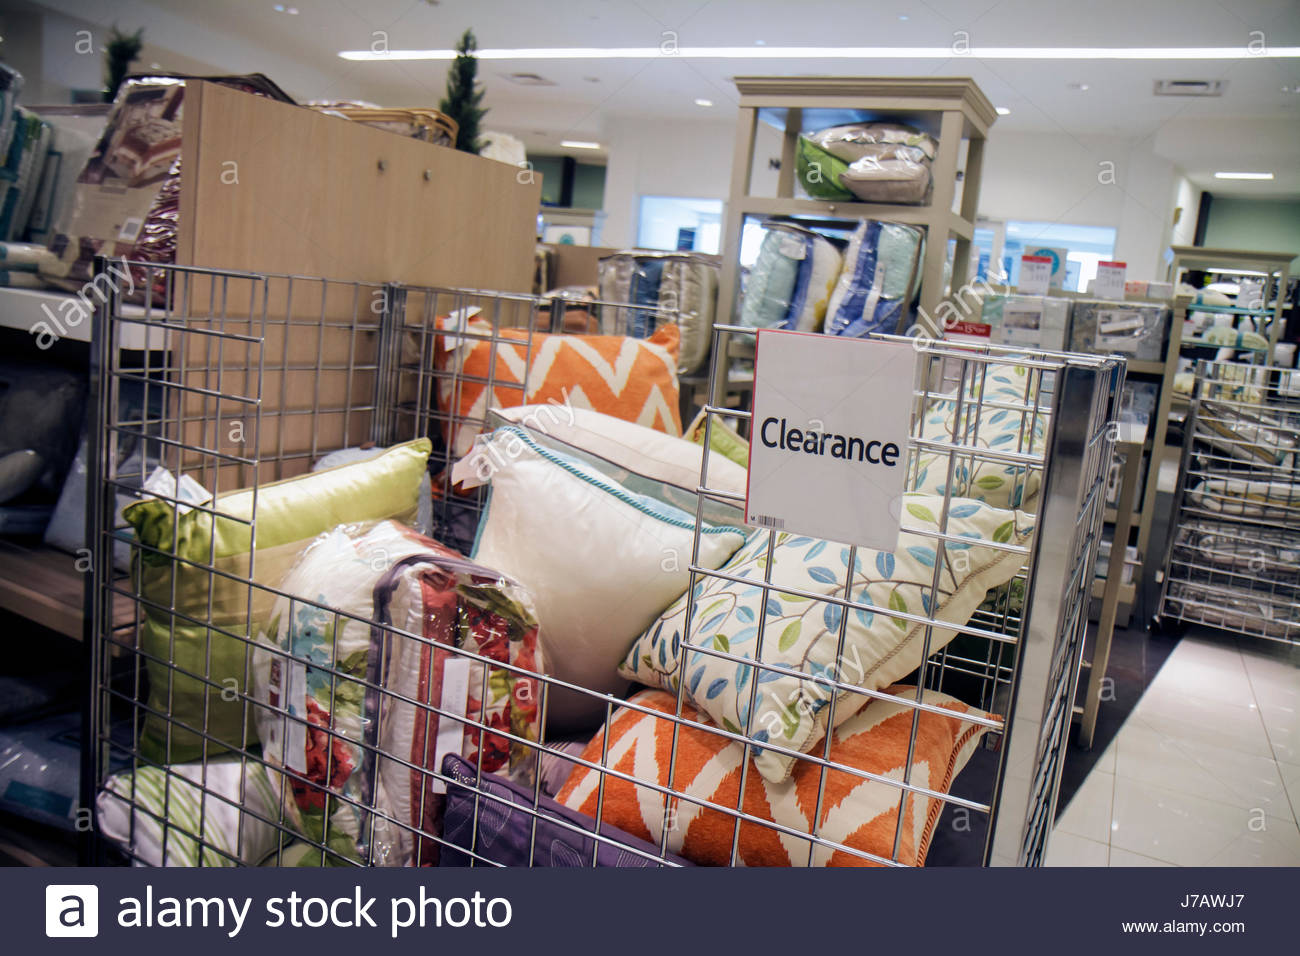 Miami Florida Aventura Macyu0027s Department Store Retail Display For Sale Home  Furnishings Shopping Clearance Throw Pillows Decor